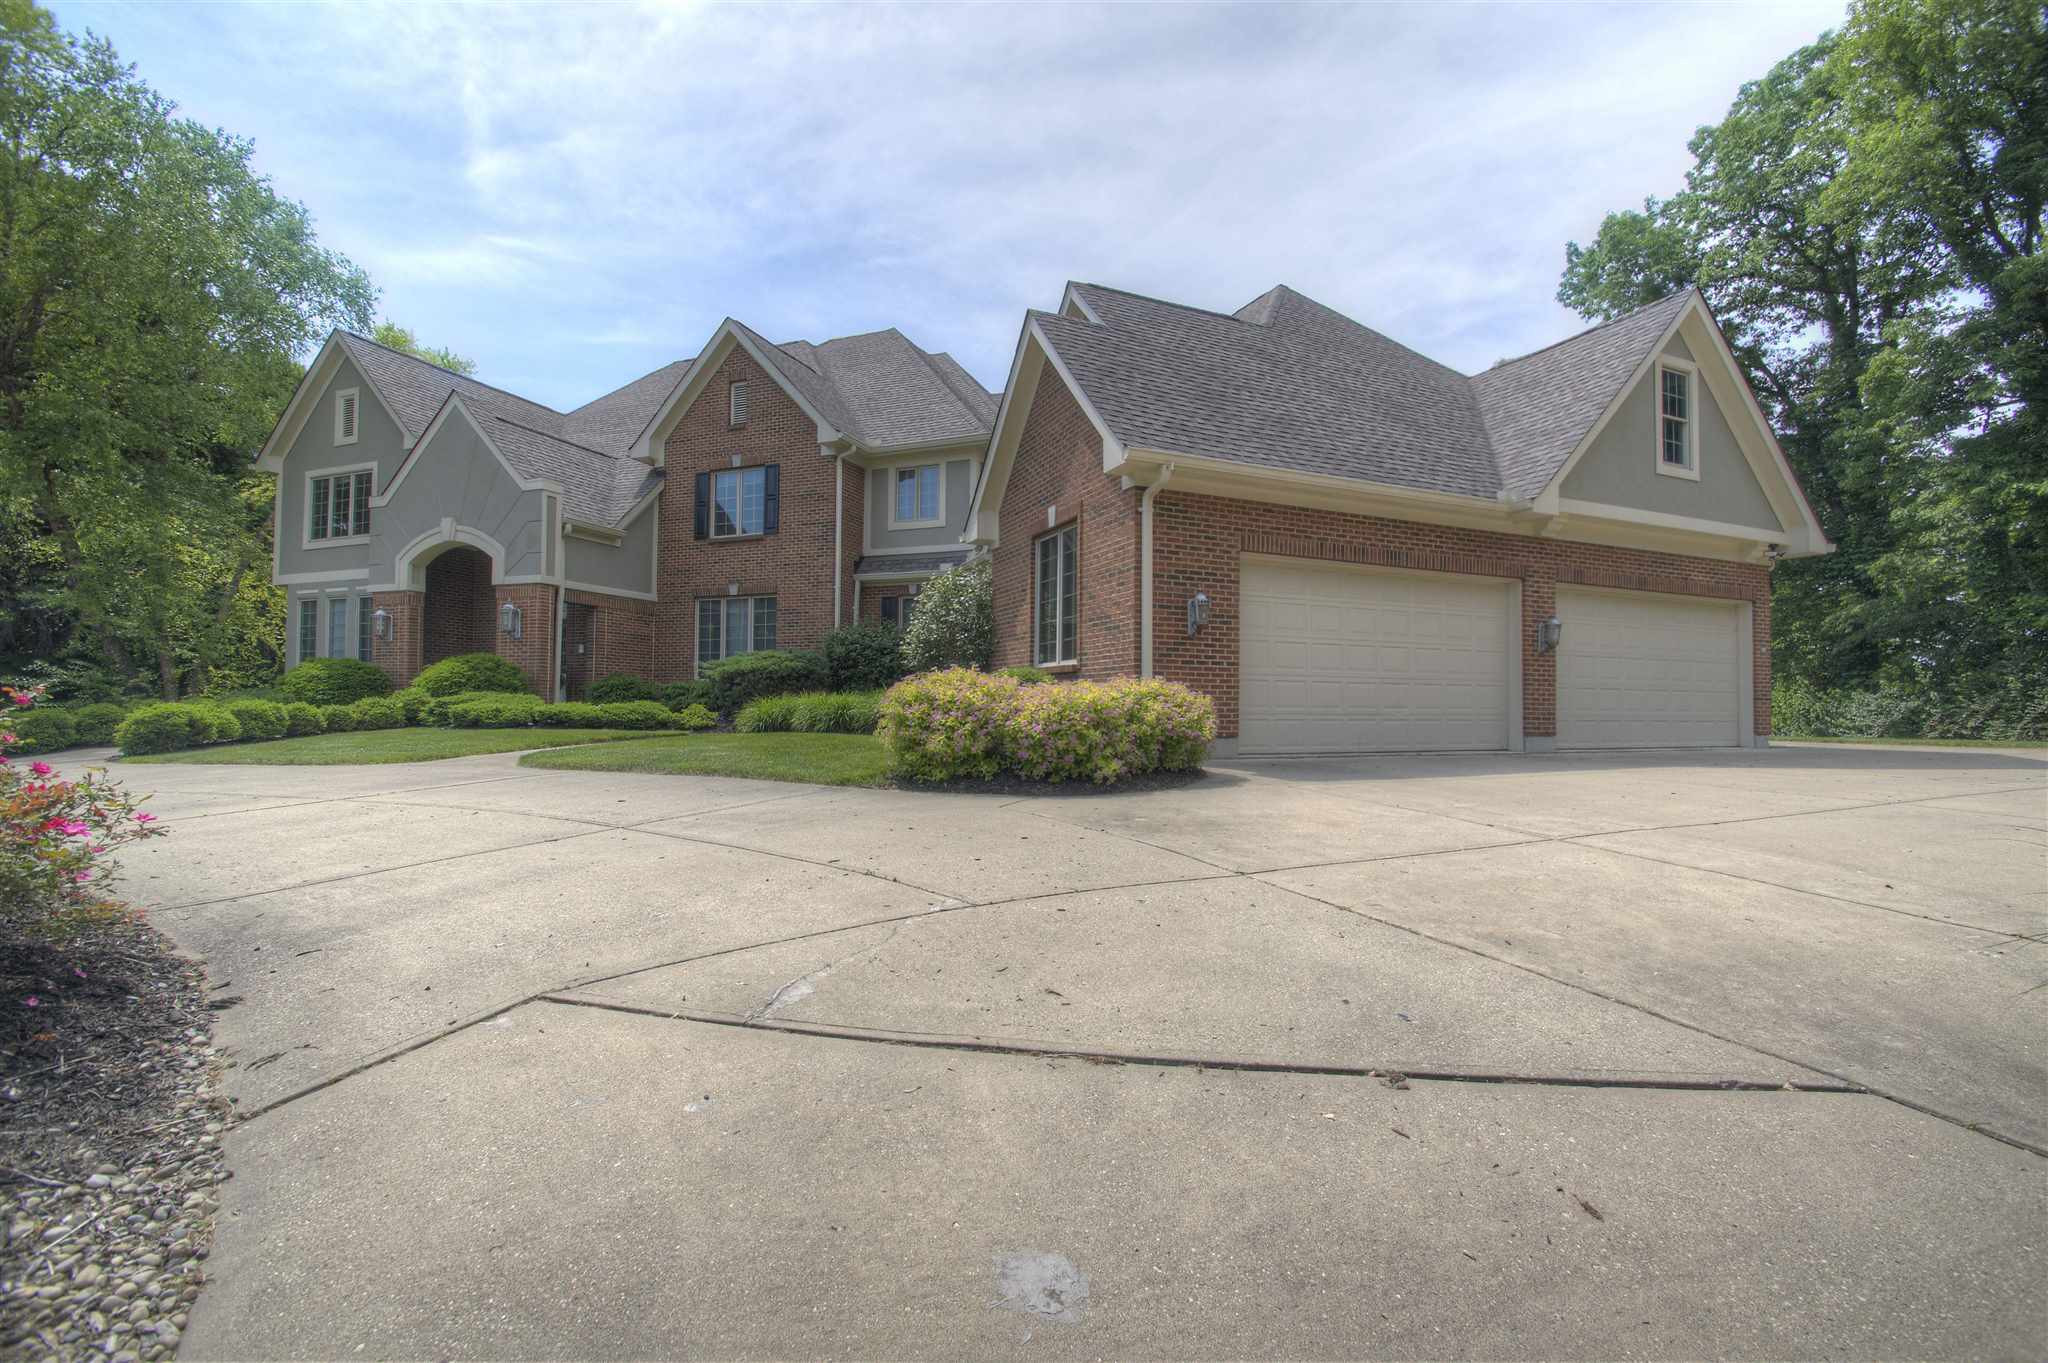 Photo 2 for 926 Riverwatch Drive Crescent Springs, KY 41017